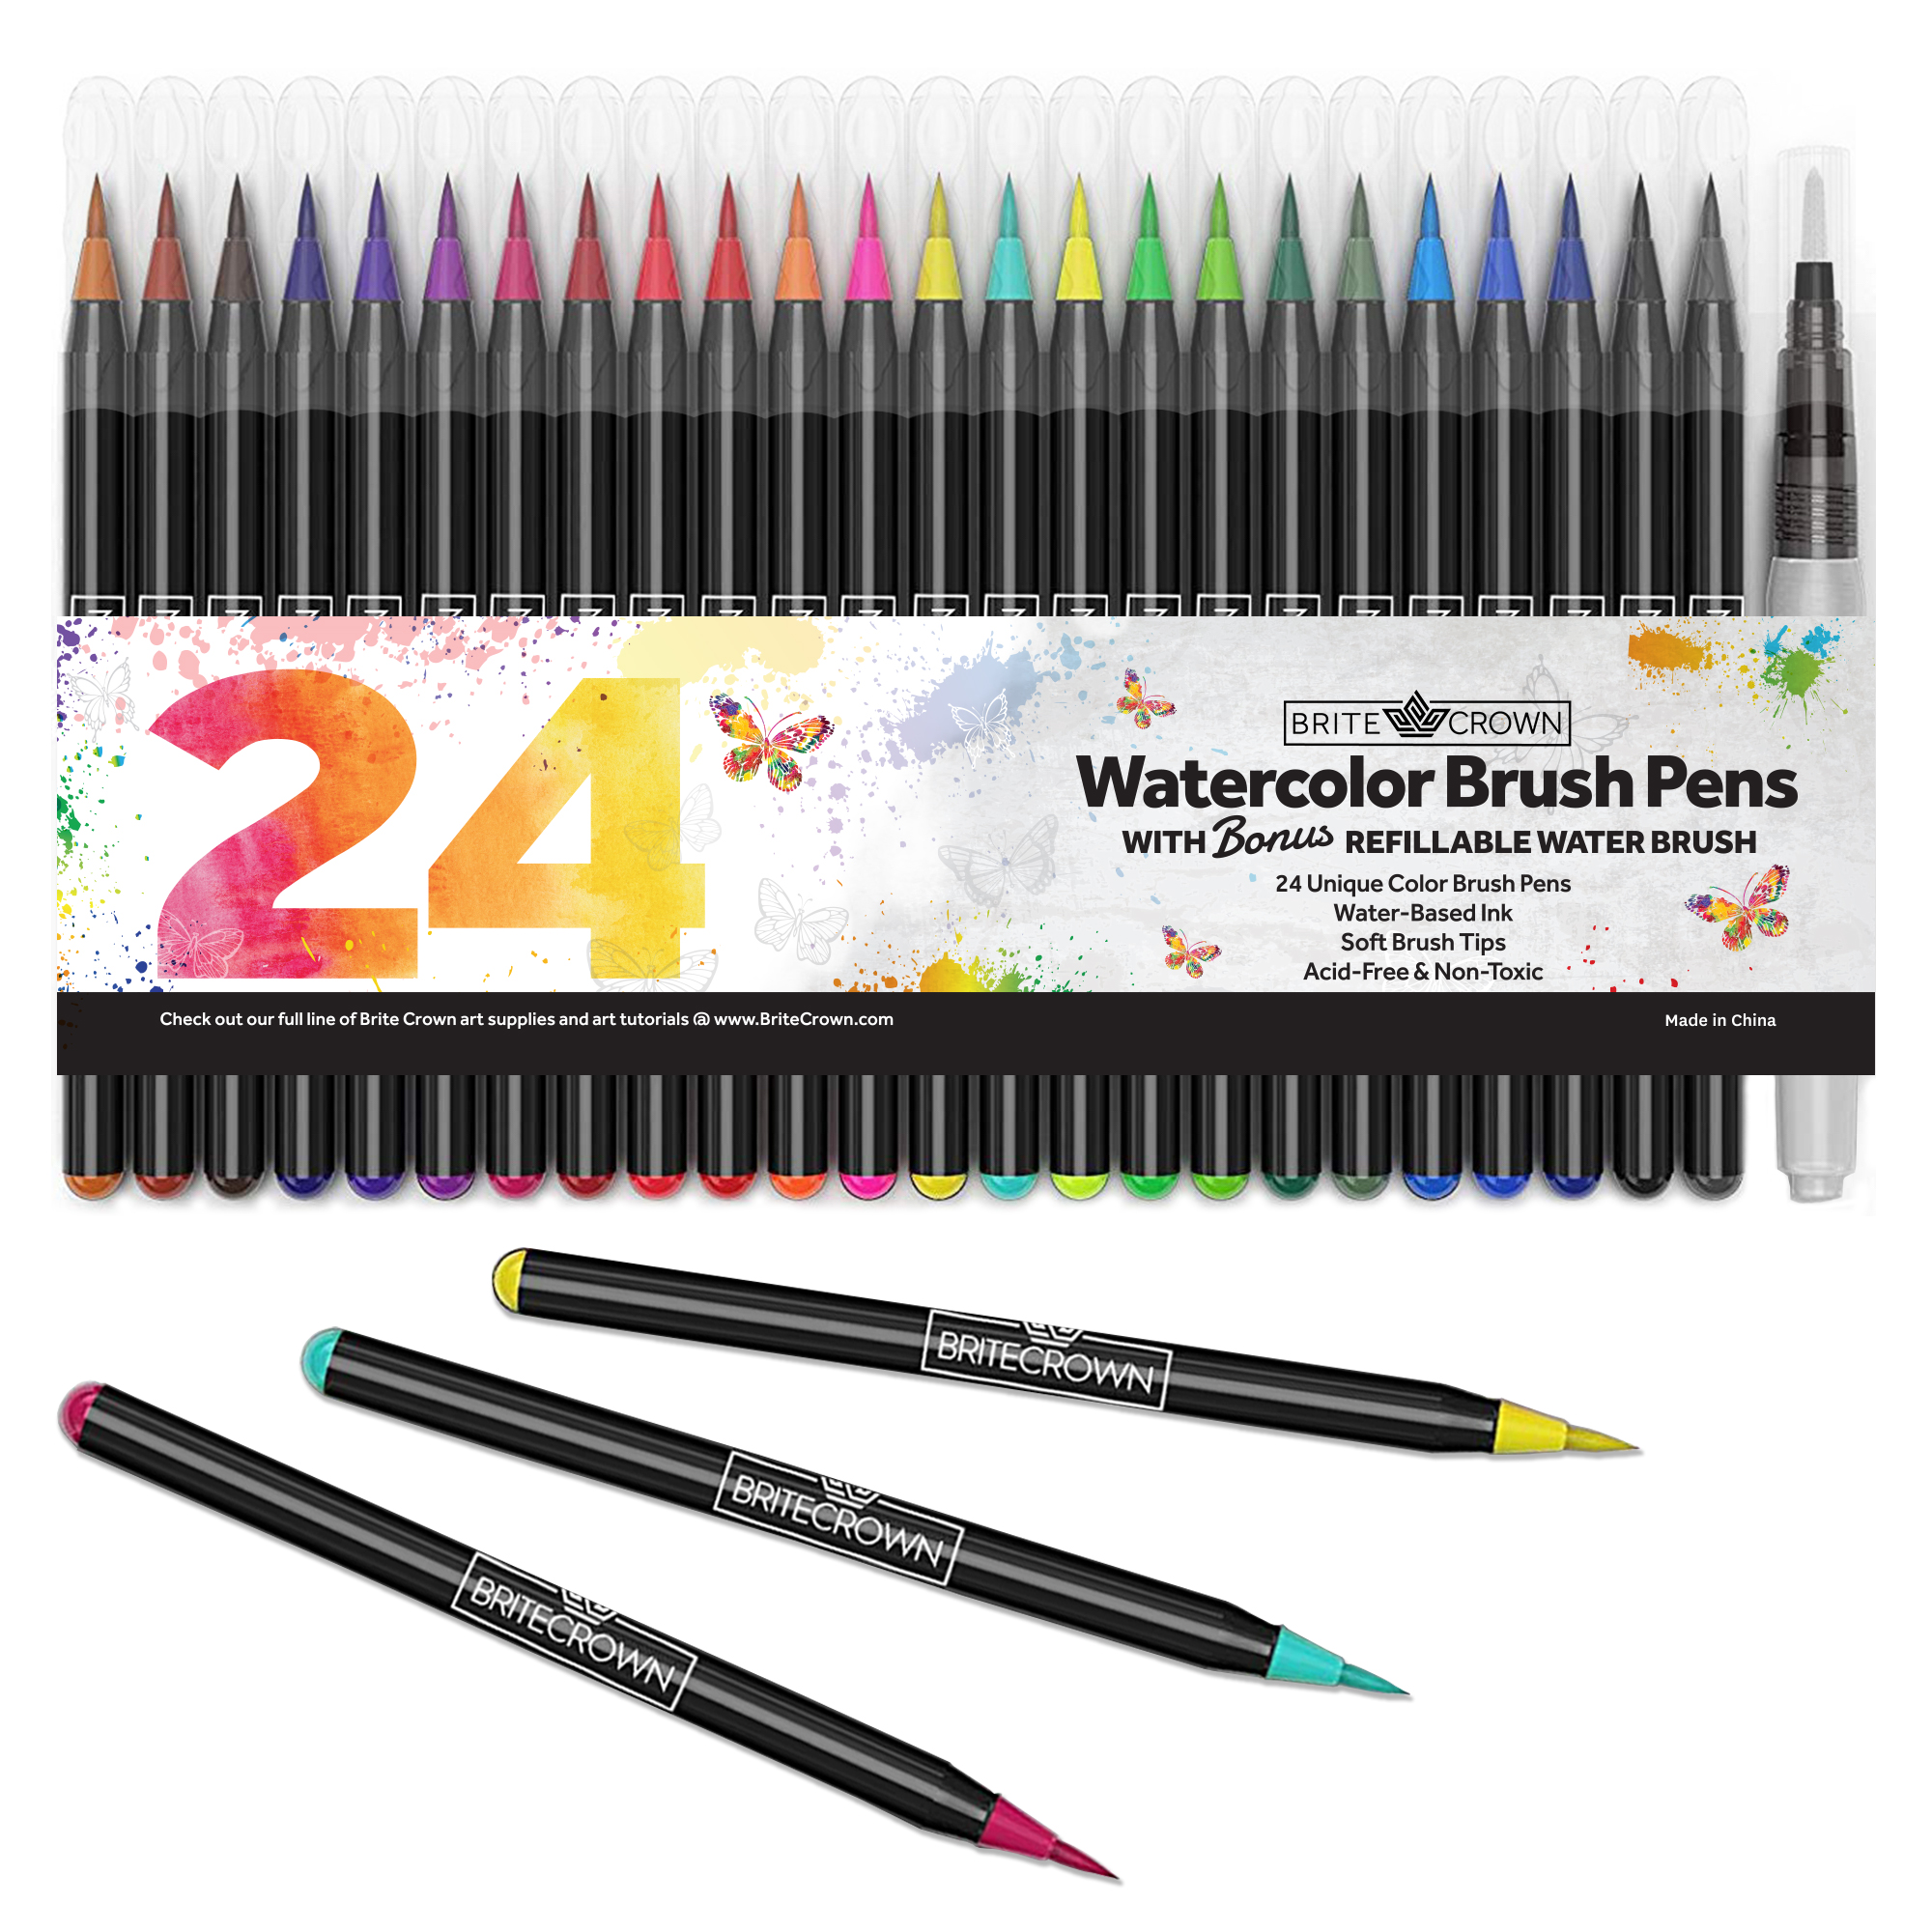 Brite Crown Watercolor Brush Pens